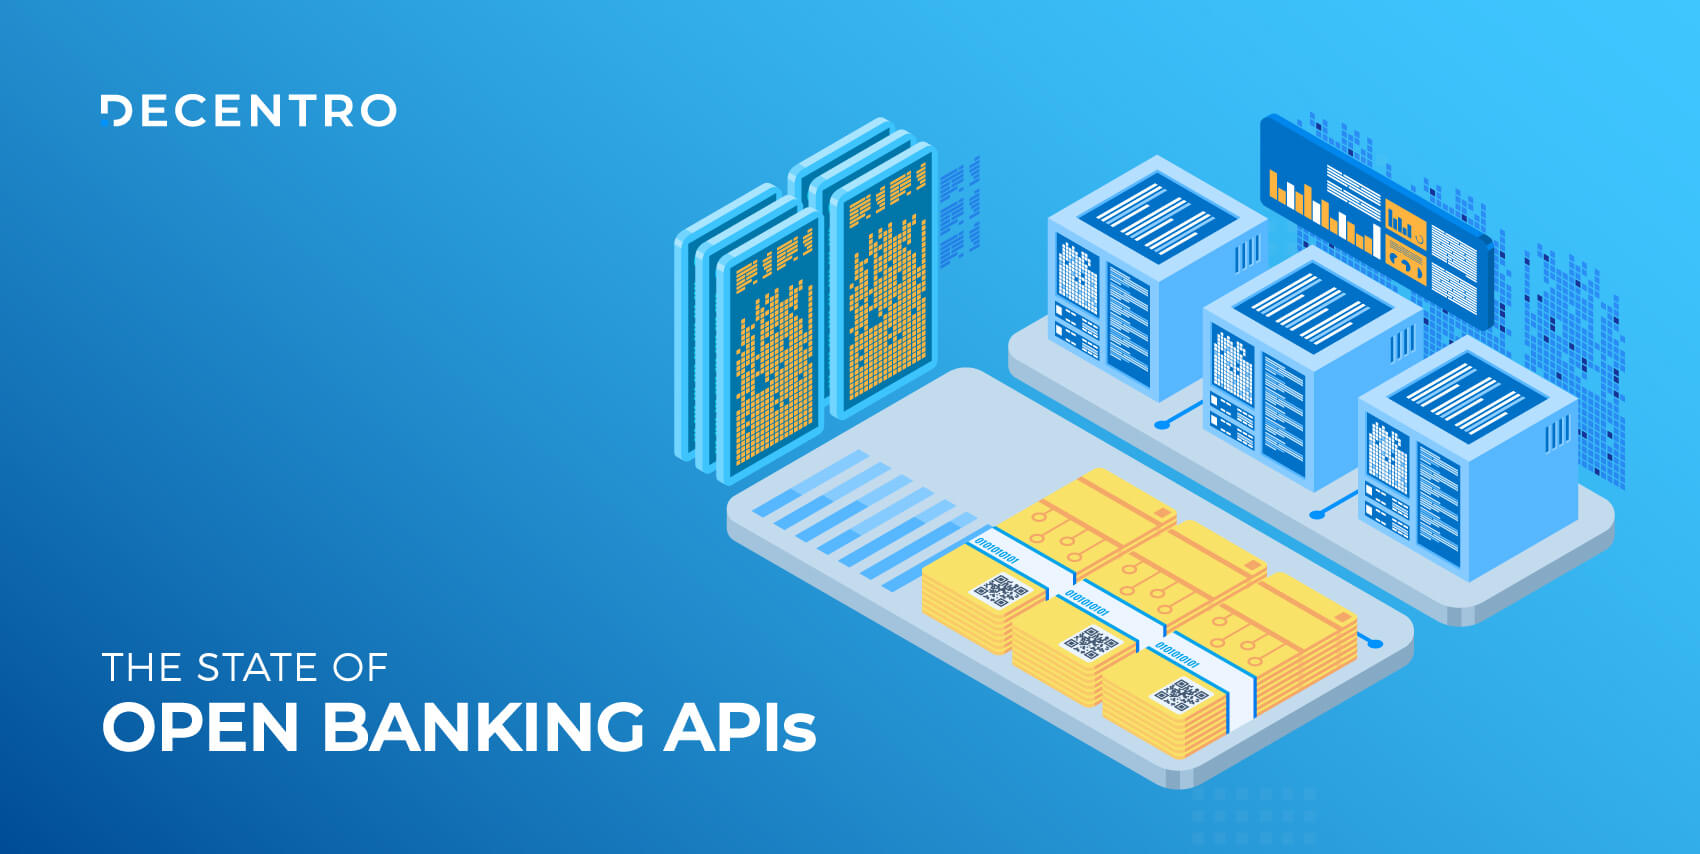 Learn about the state of Open Banking APIs in India with Decentro.